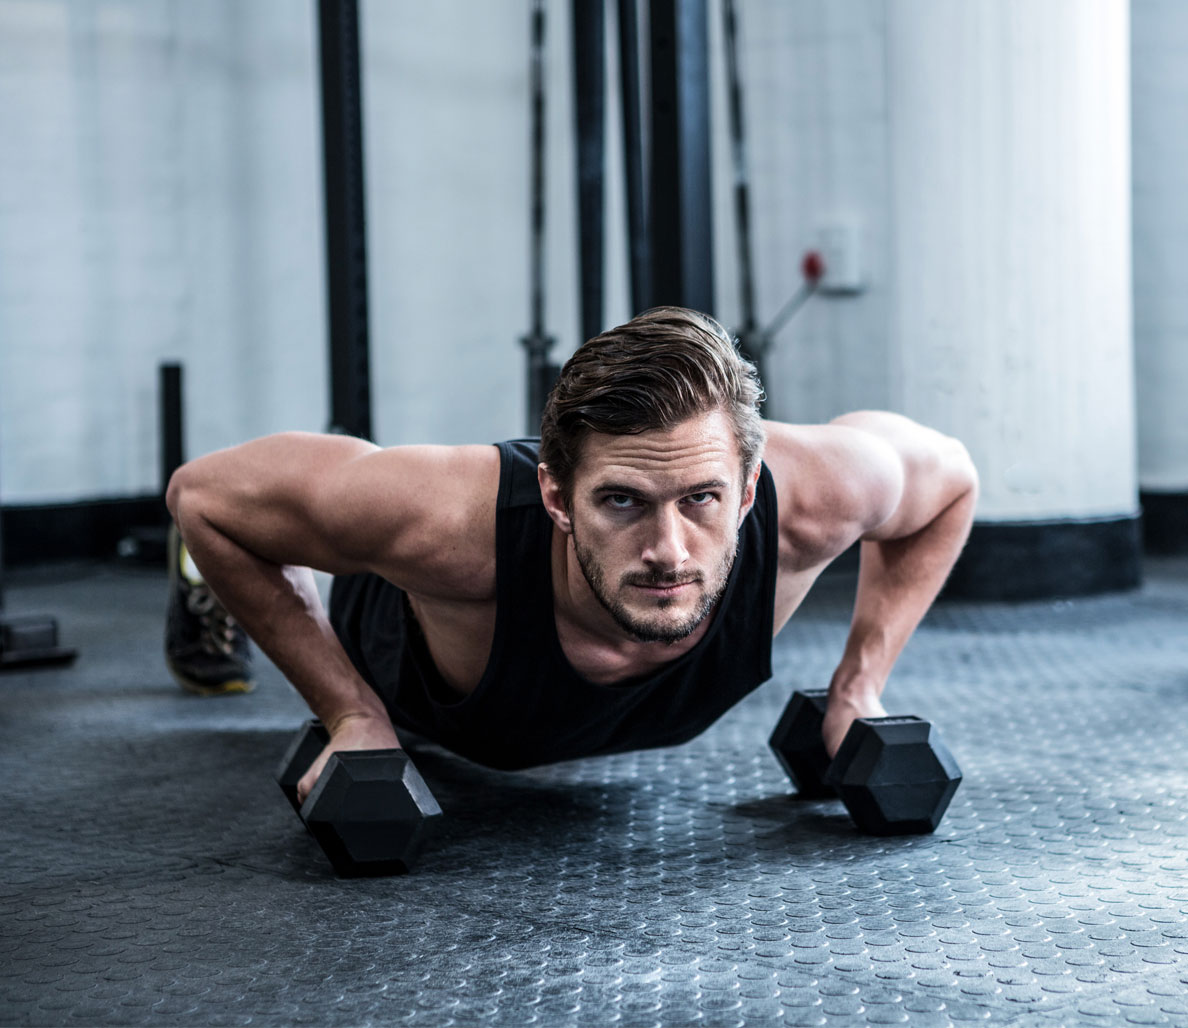 How to Build Lean Muscle Muscle and Lose Weight for an Entire Year